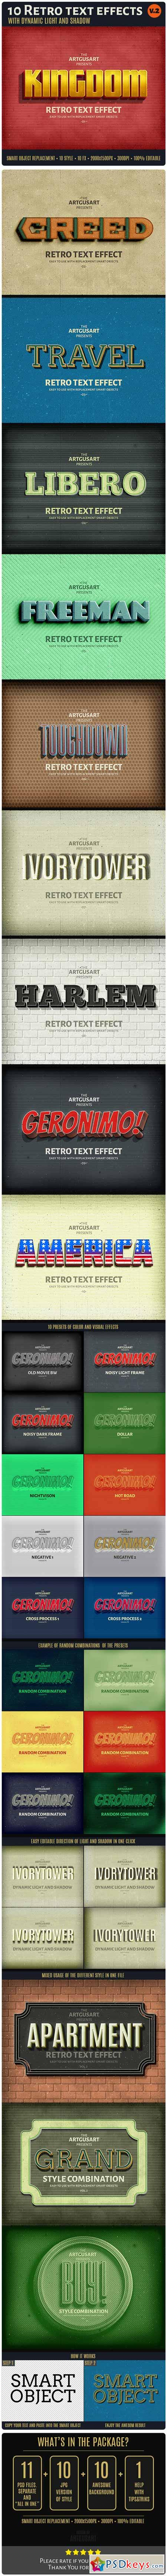 10 Retro Text Effect v.2 10692122